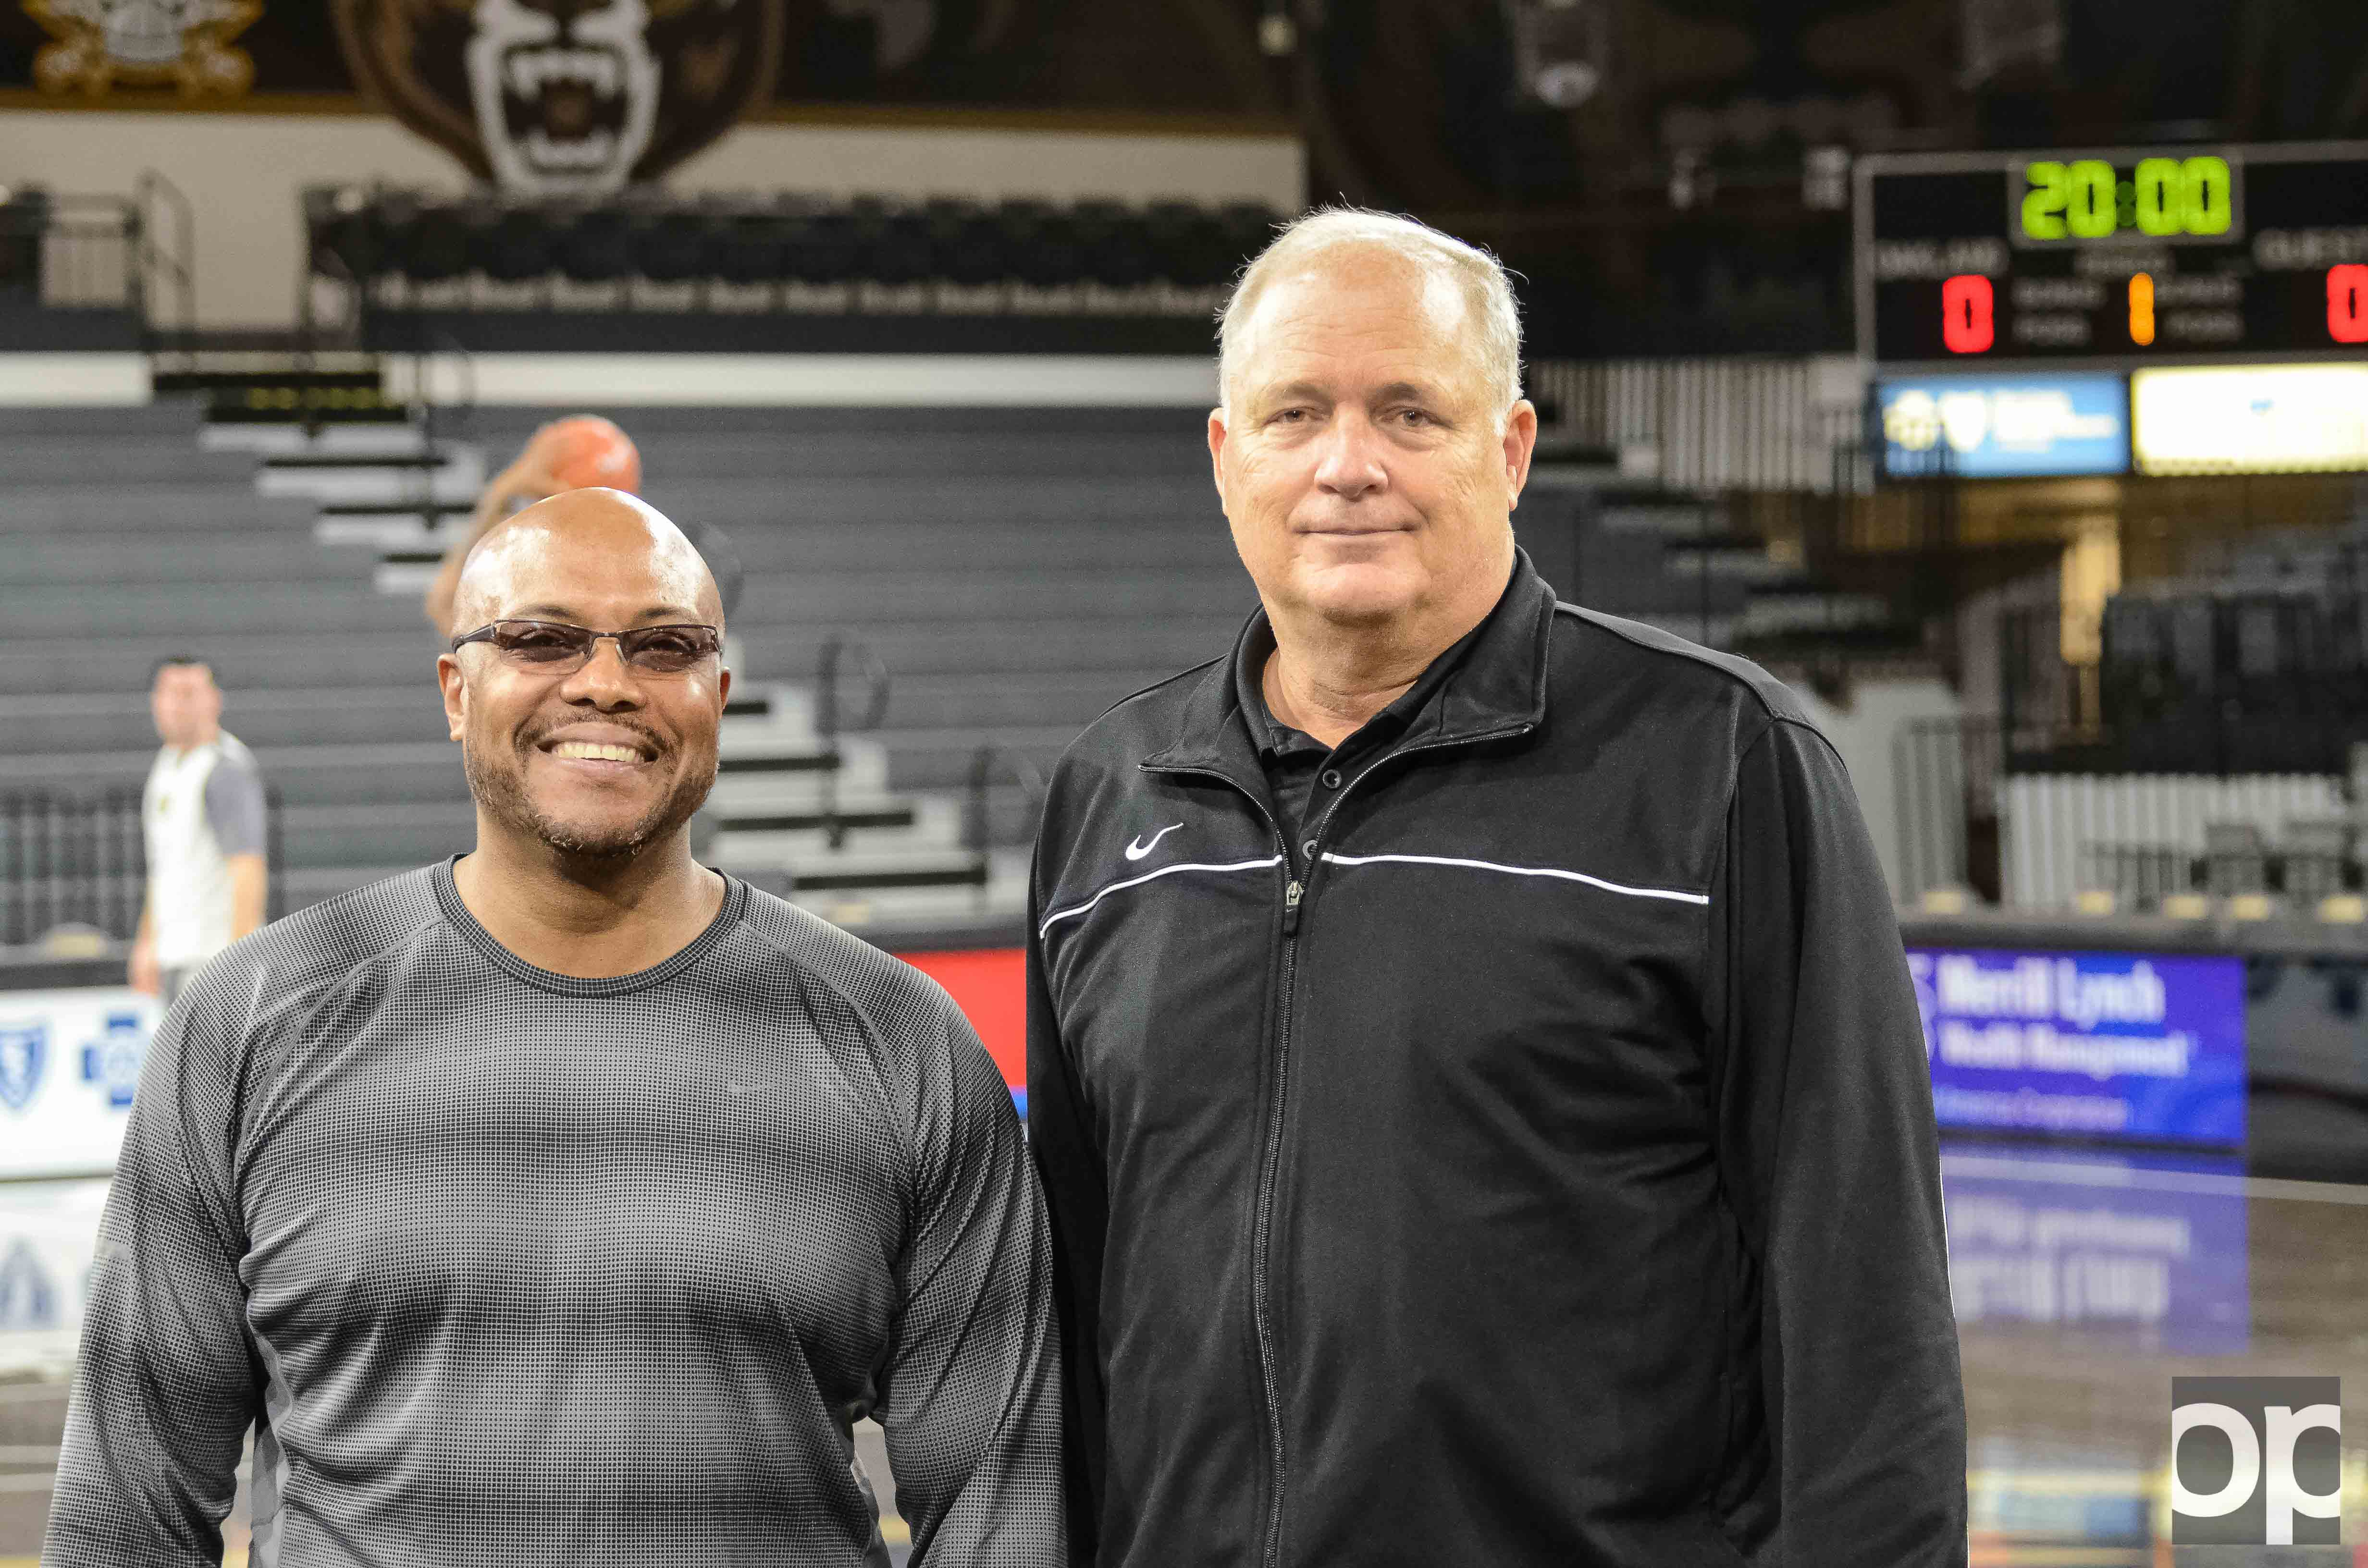 Assistant Coach Cornell Mann (left) and Associate Head Coach Dan Hipsher (right) joined the Golden Grizzlies men's basketball team in its 50th year.